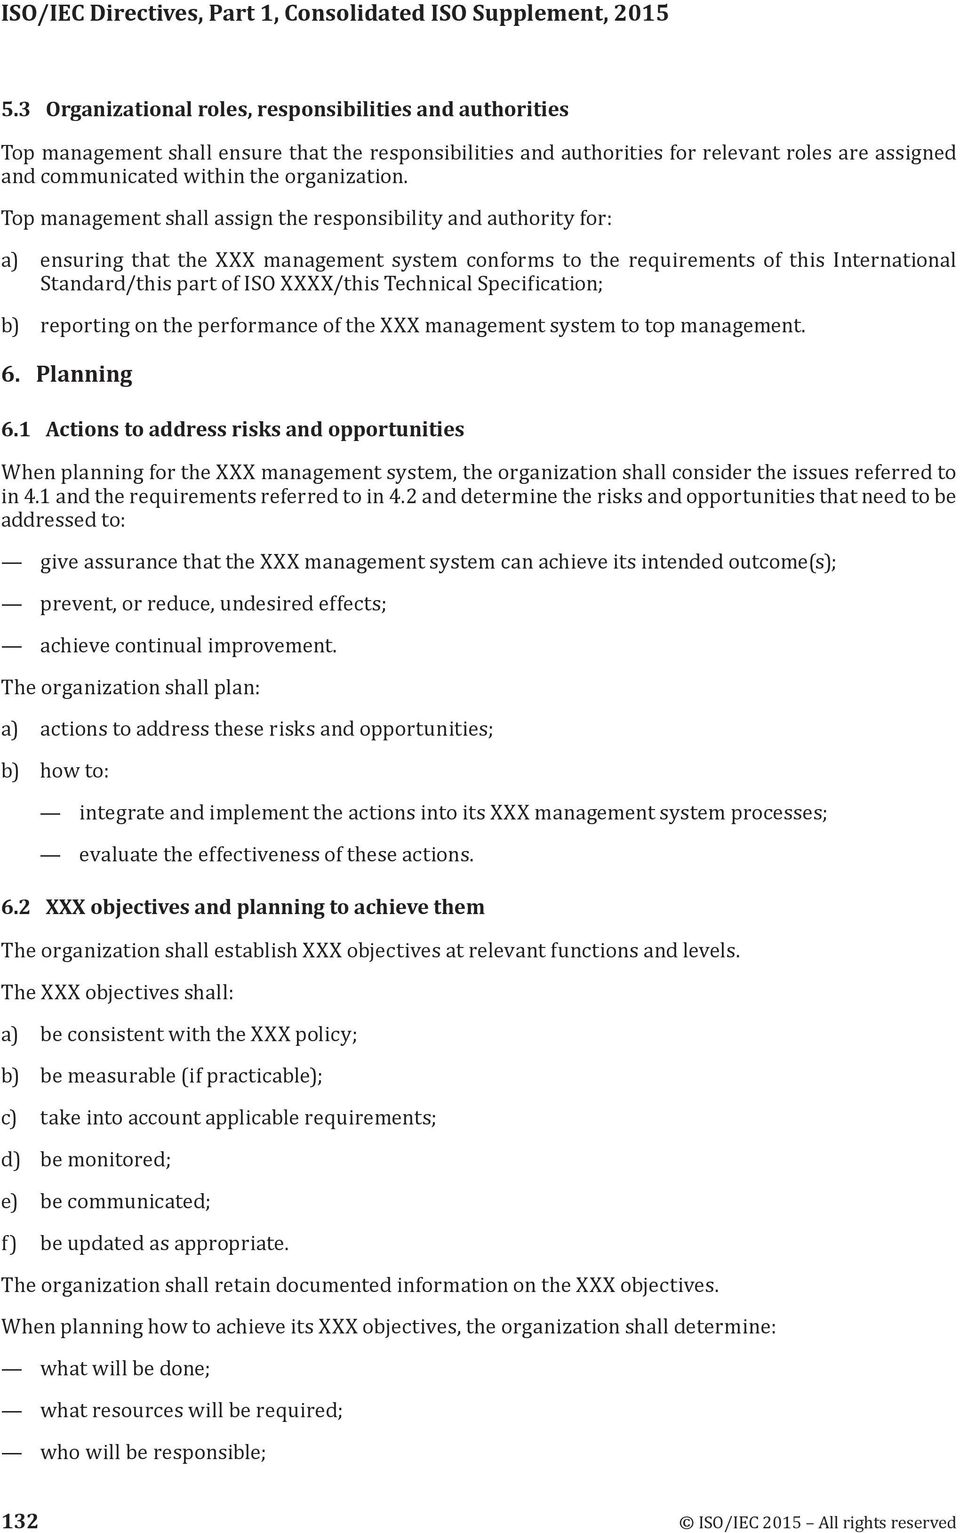 Top management shall assign the responsibility and authority for: a) ensuring that the XXX management system conforms to the requirements of this International Standard/this part of ISO XXXX/this